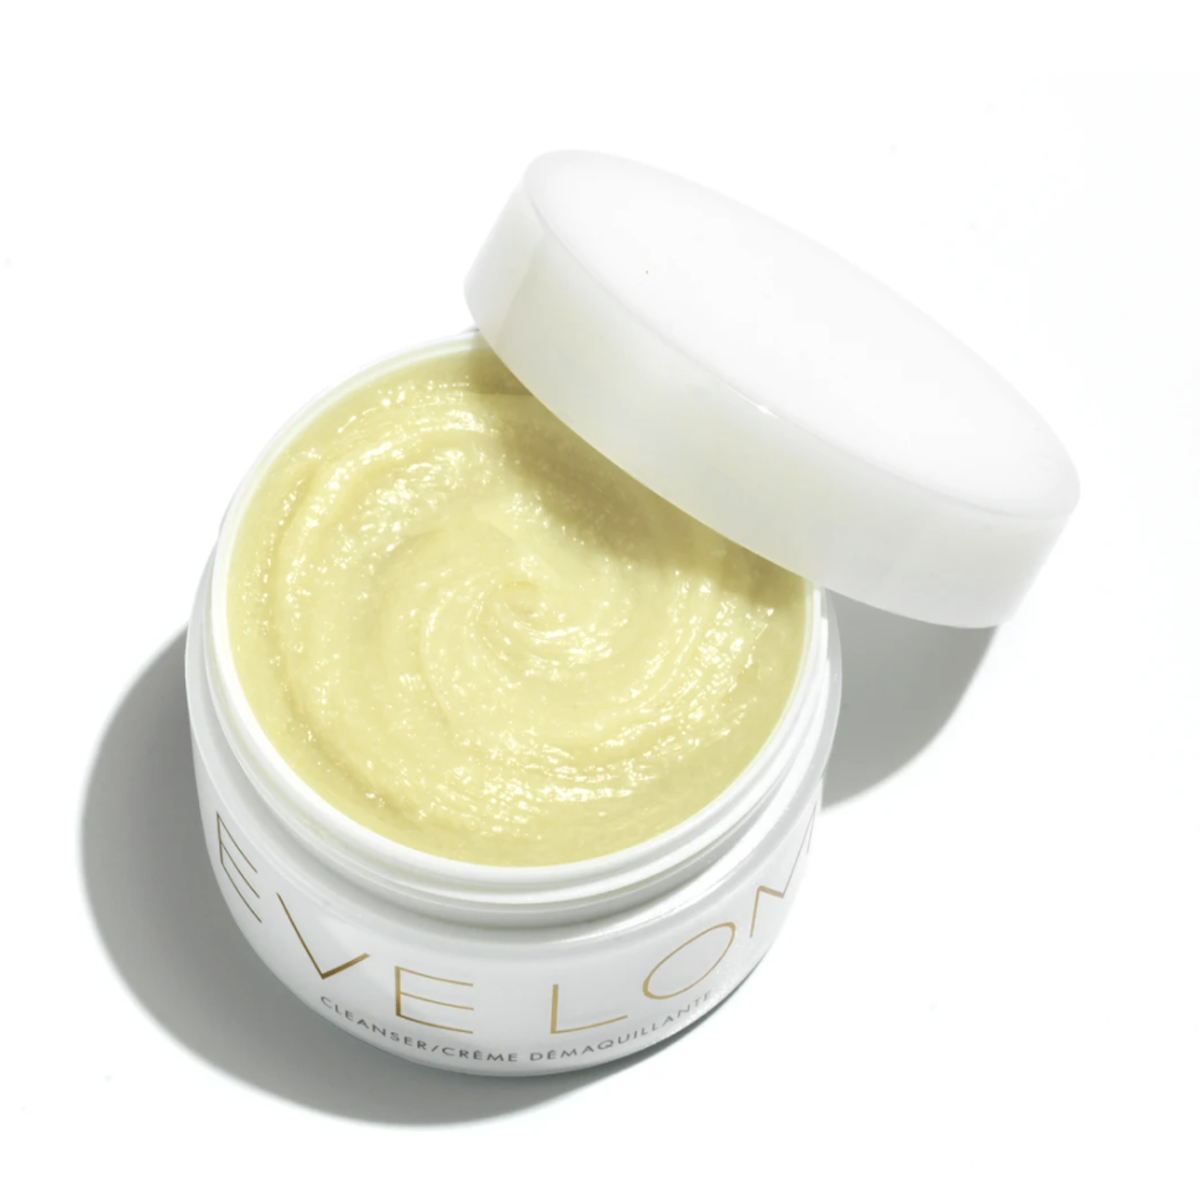 Eve Lom Cleanser in white tub